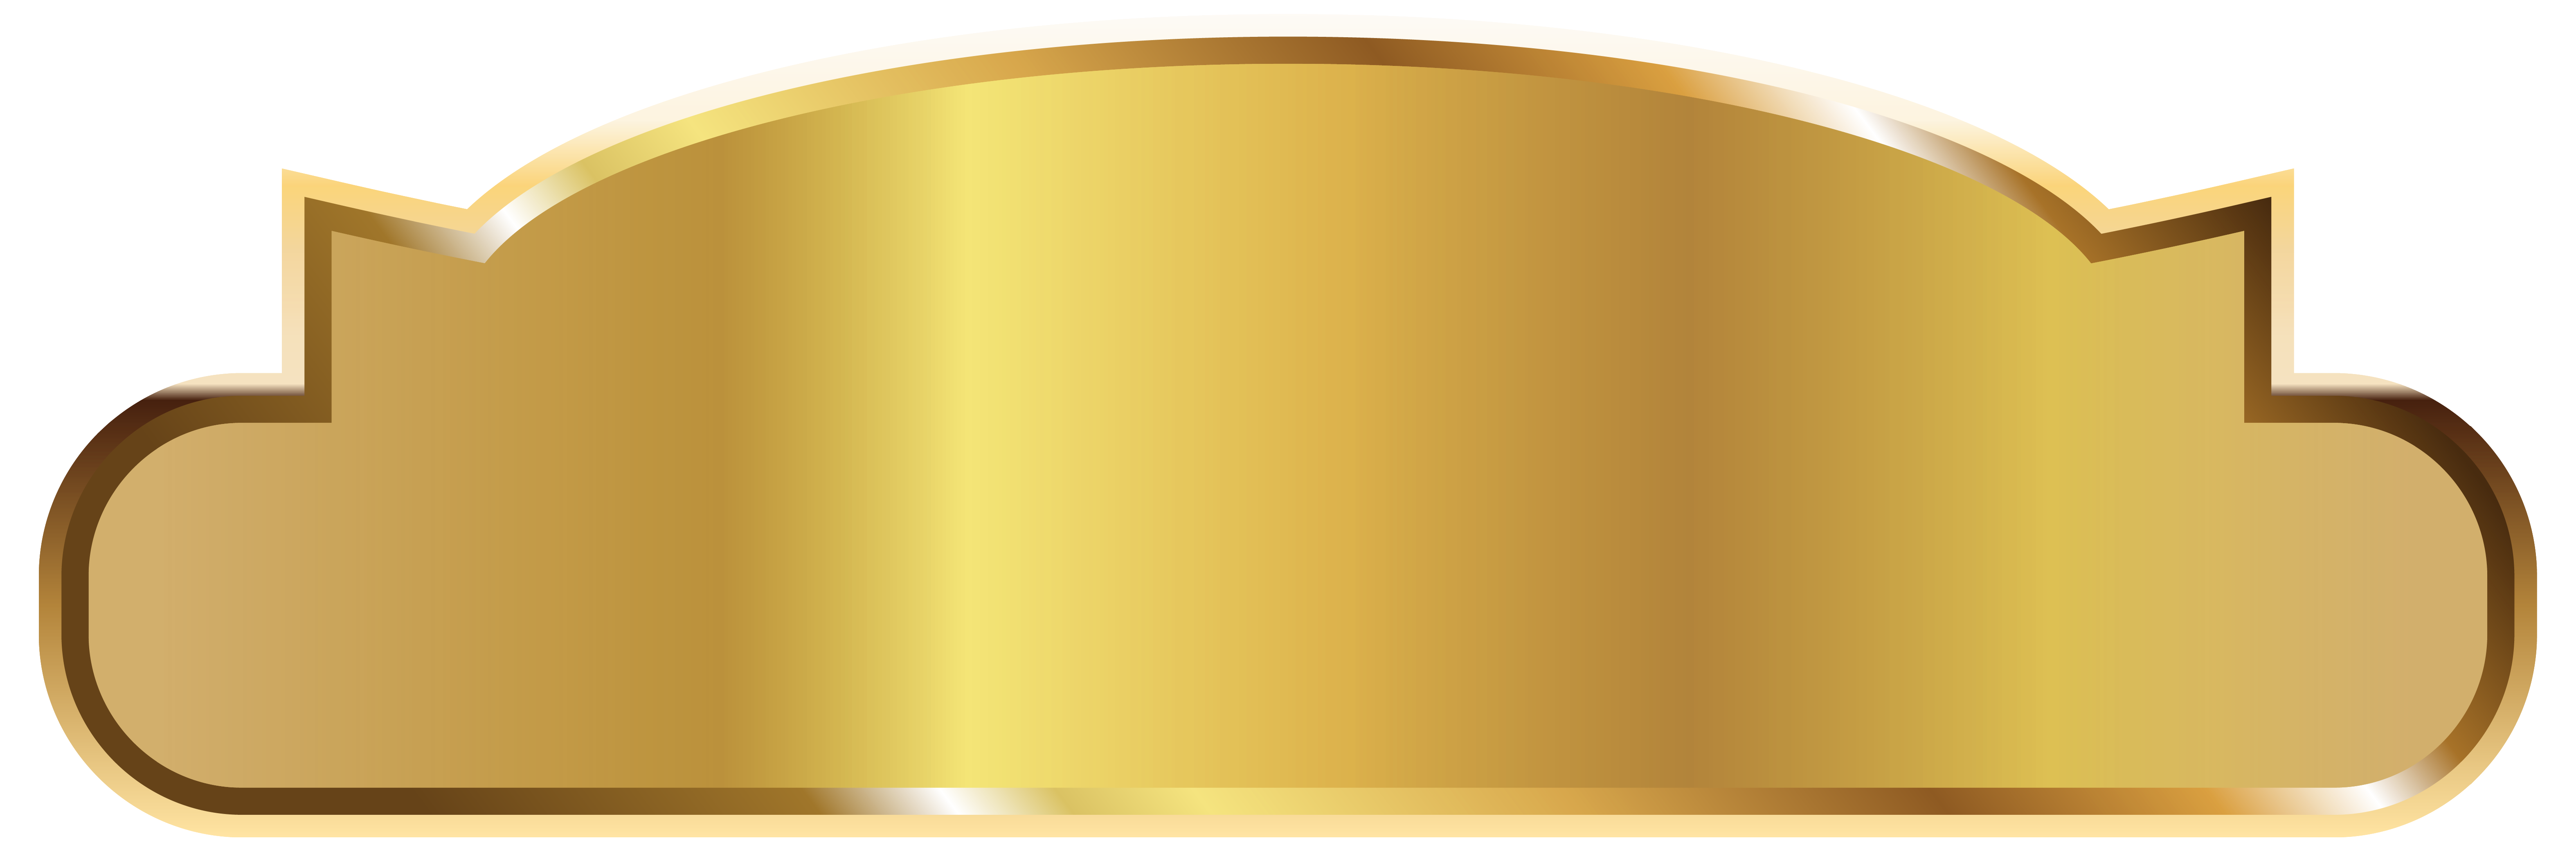 Gold Label Template PNG Image